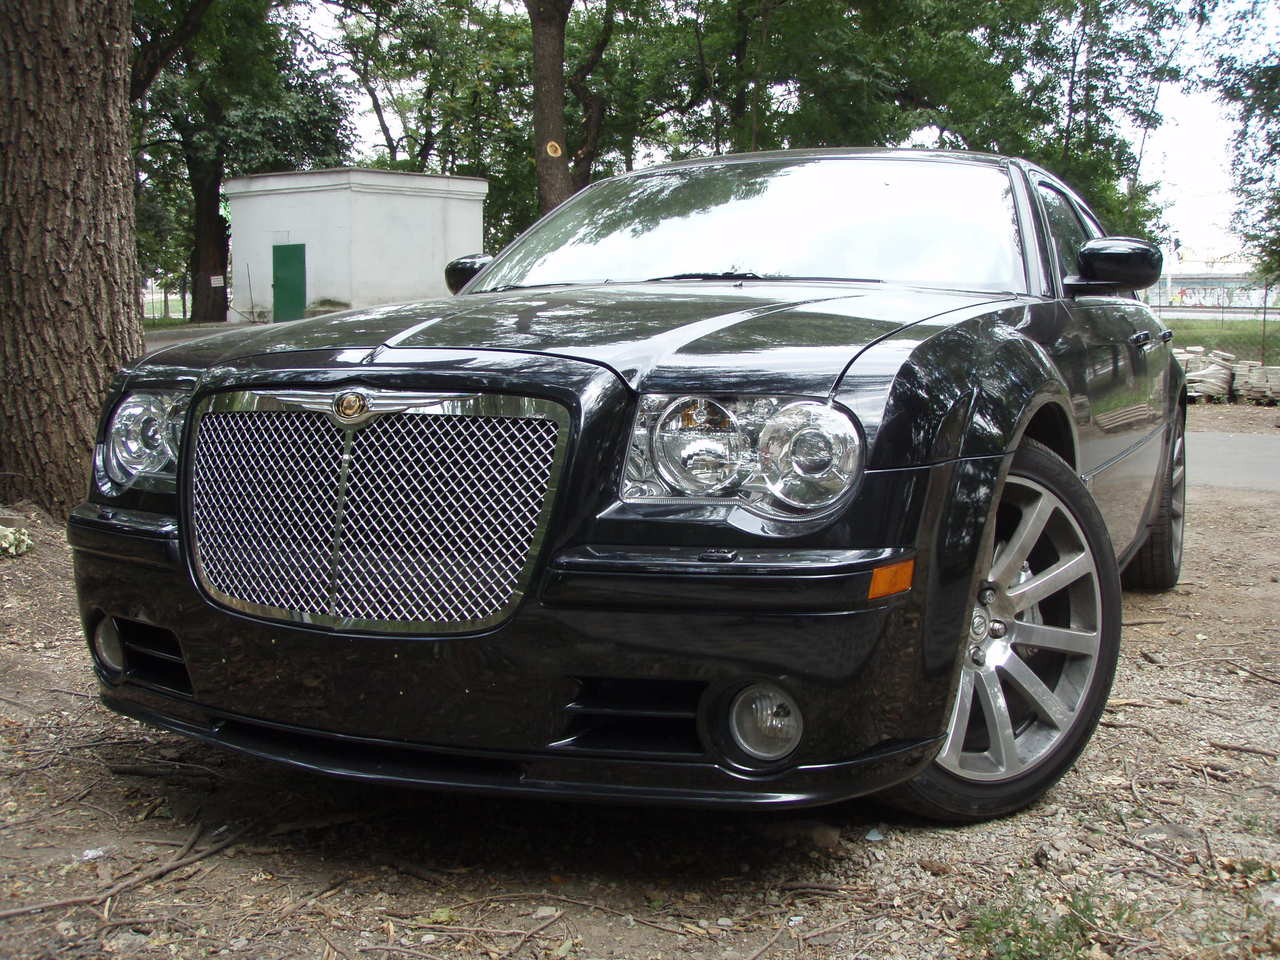 2005 chrysler 300c pictures 6100cc gasoline fr or rr automatic for sale. Black Bedroom Furniture Sets. Home Design Ideas